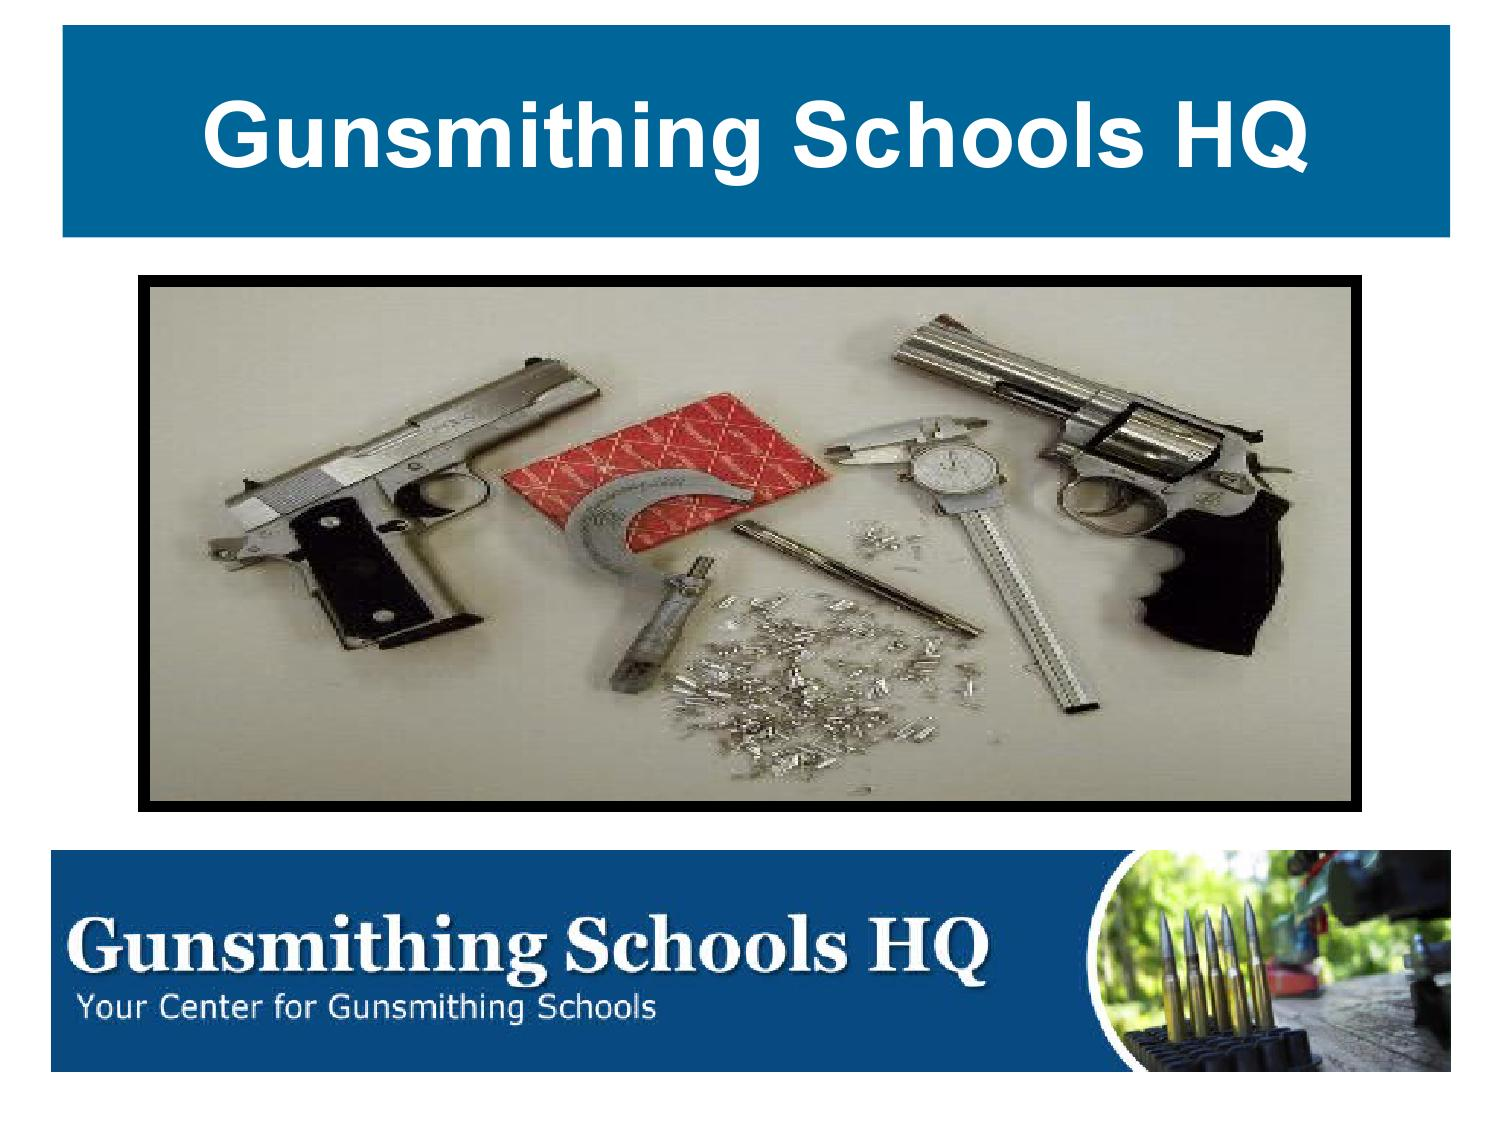 gunsmithing schools